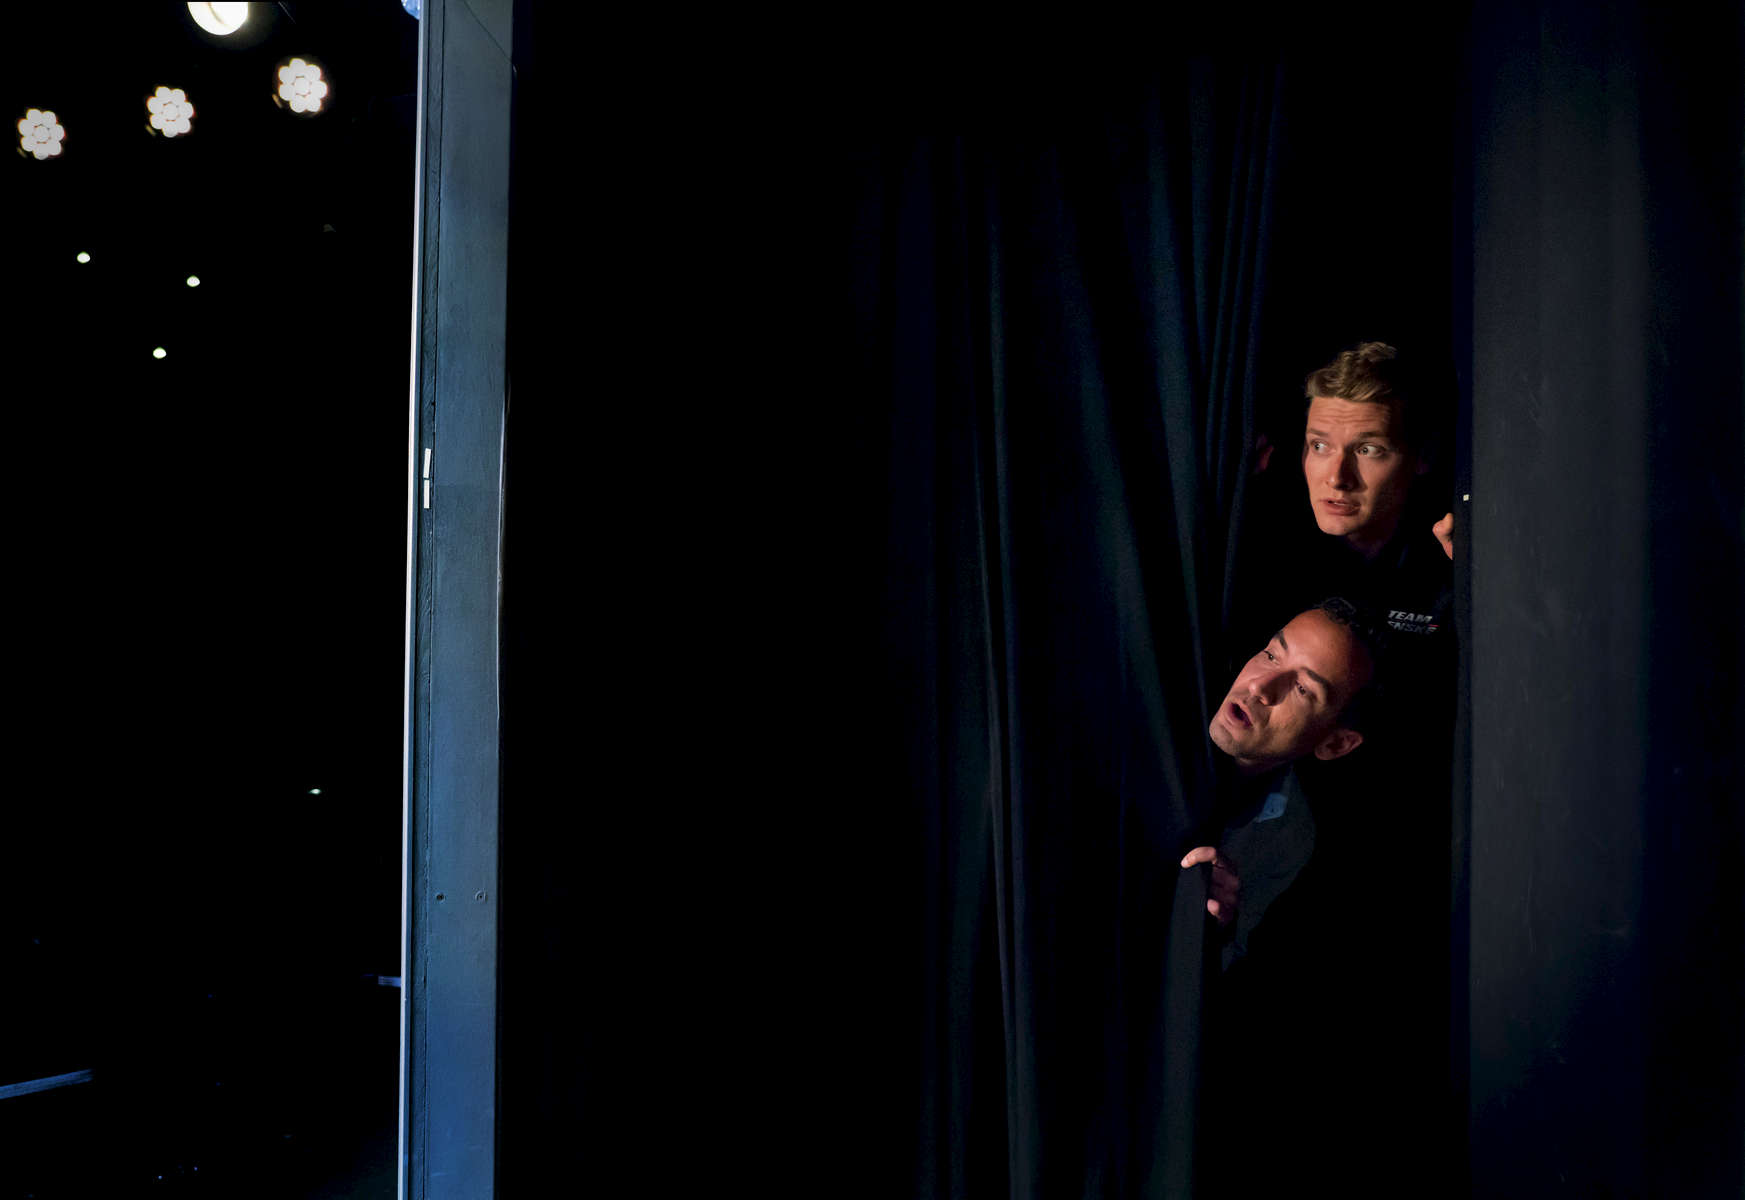 Indy 500 race champion Josef Newgarden, top, and ESPN {quote}Hang Time{quote} host Sam Alipour, peek out from behind a side stage curtain at The Second City Theater in Chicago.